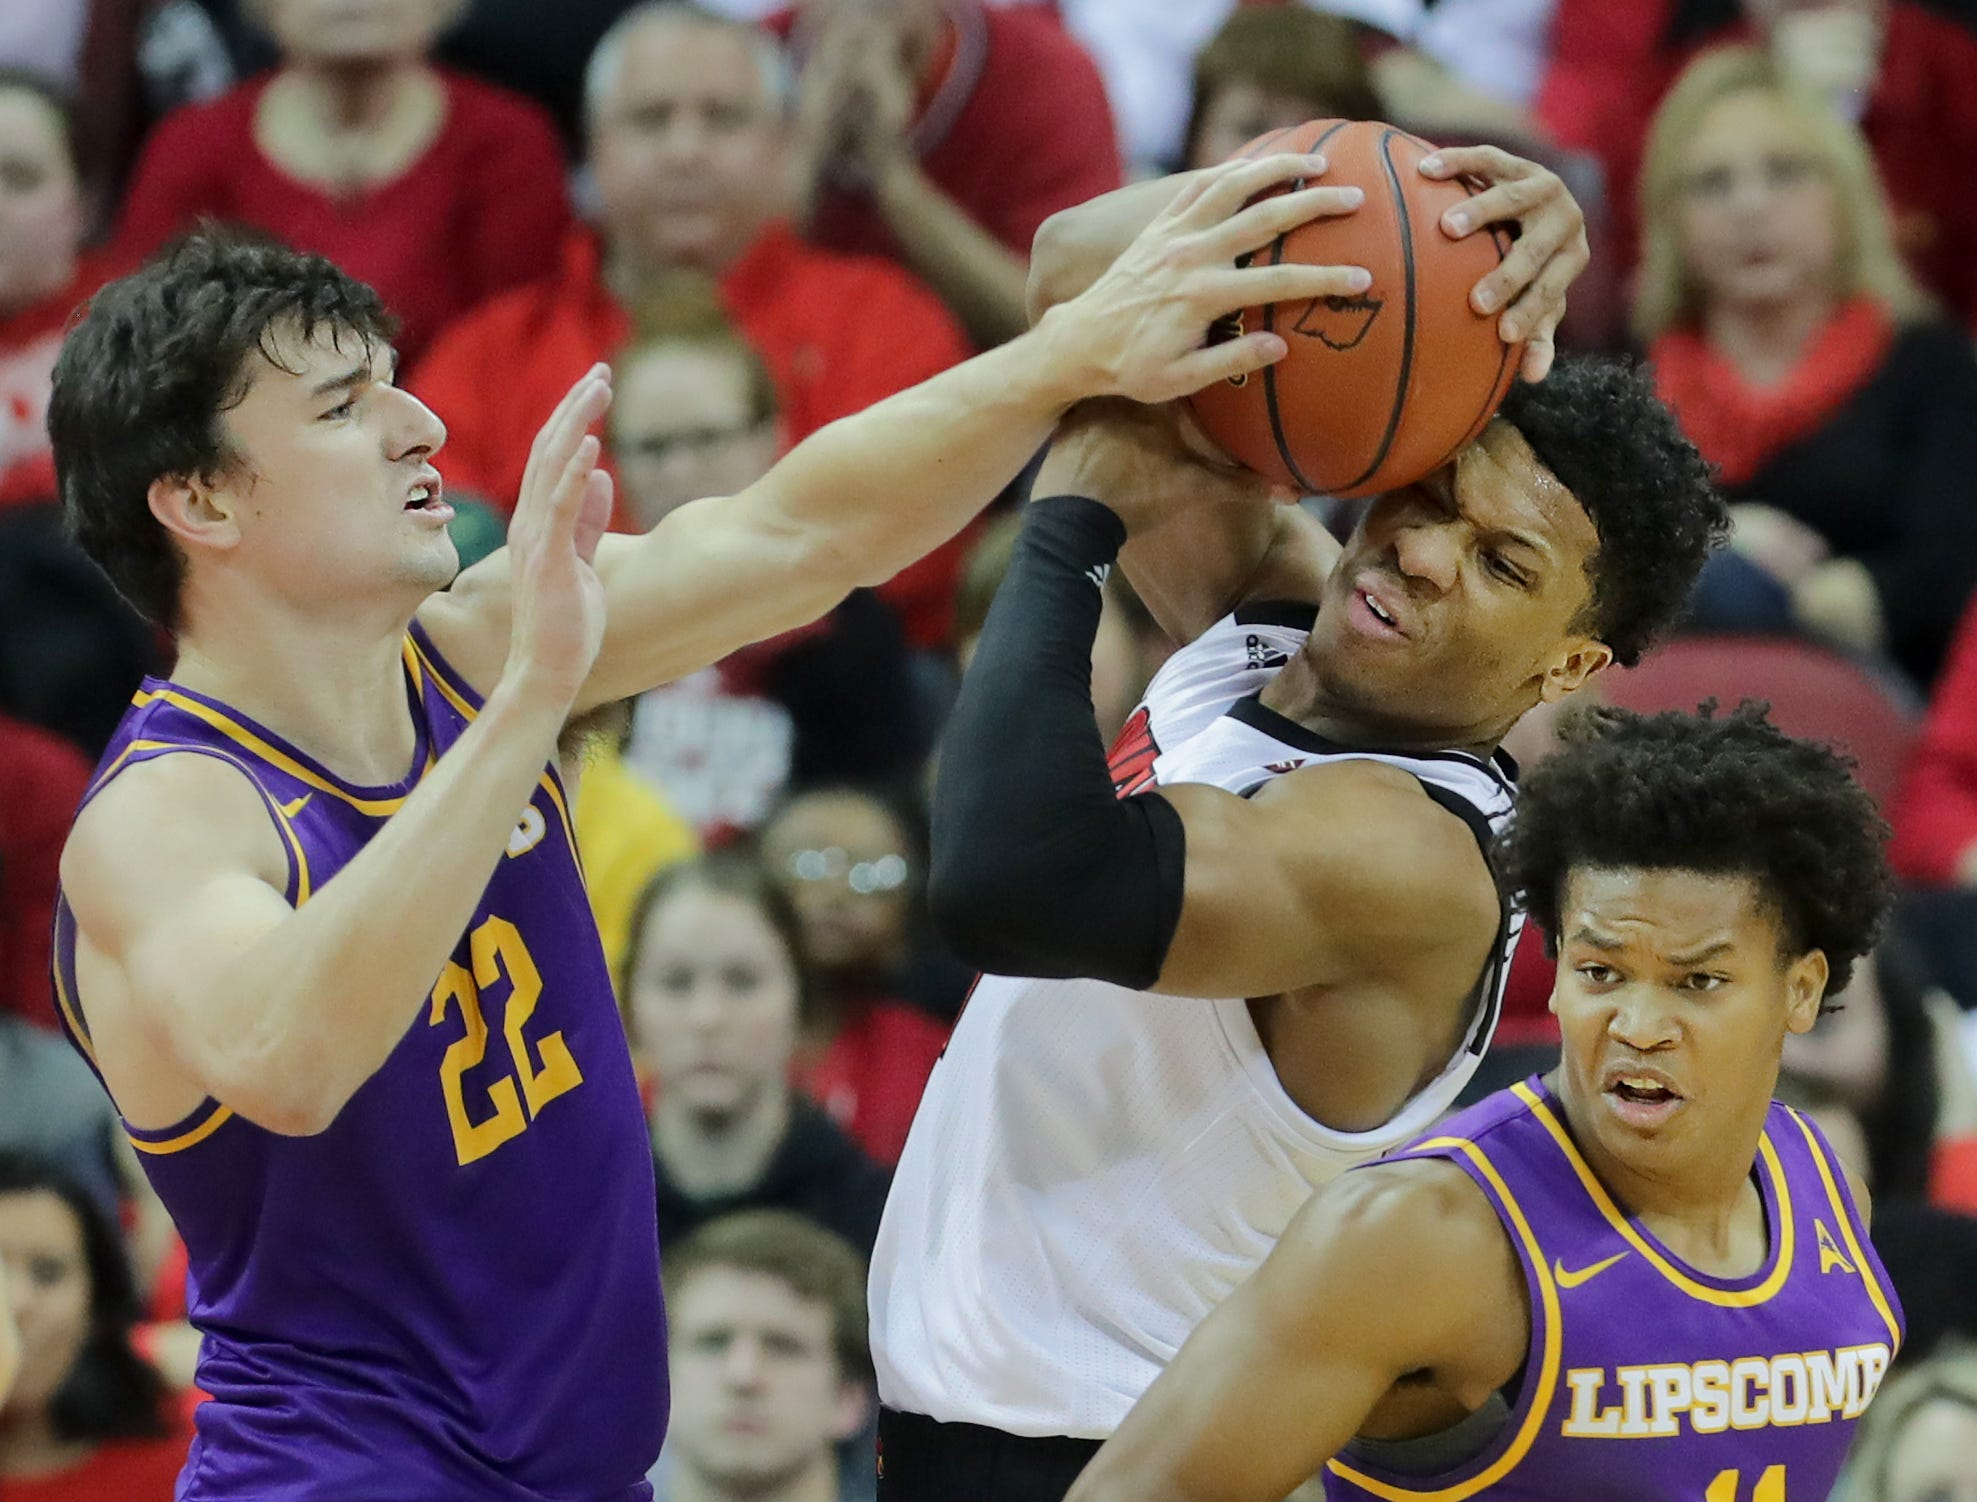 Louisville's Dwayne Sutton, center, fights for the ball with Lipscomb's Eli Pepper, left, and Alex Jones.  